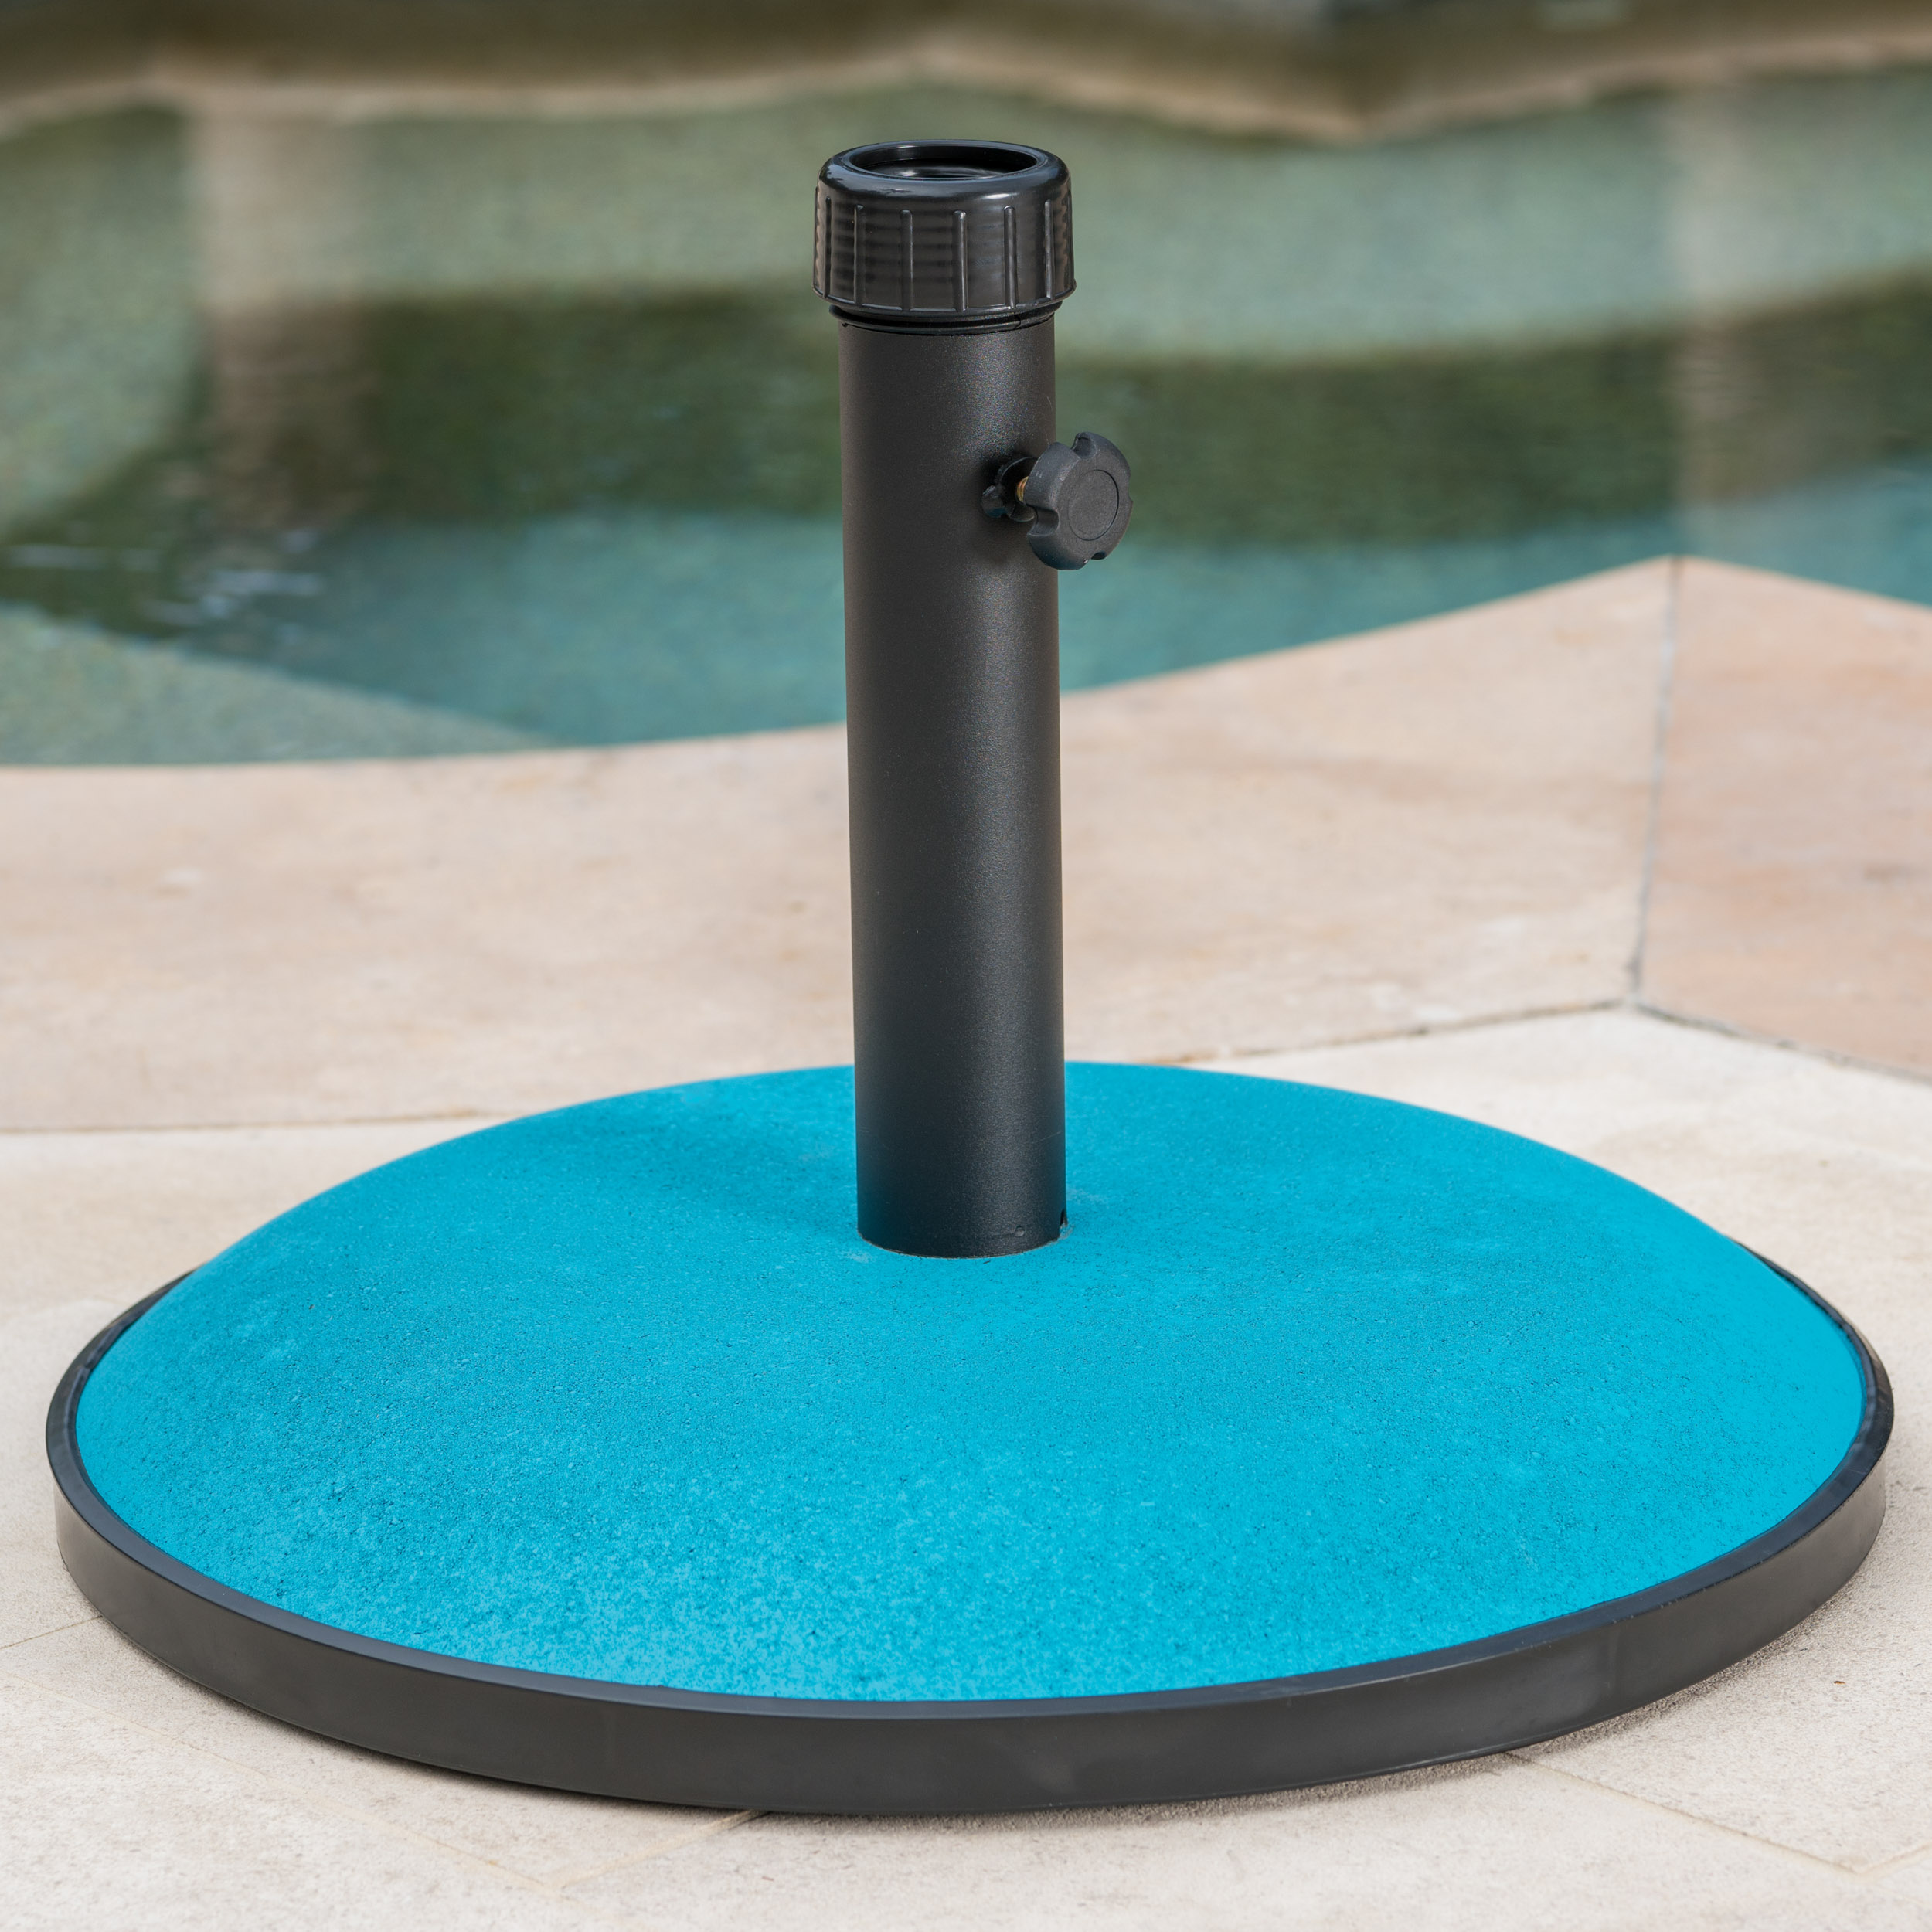 Maximus 55lbs Concrete and Iron Umbrella Base, Teal